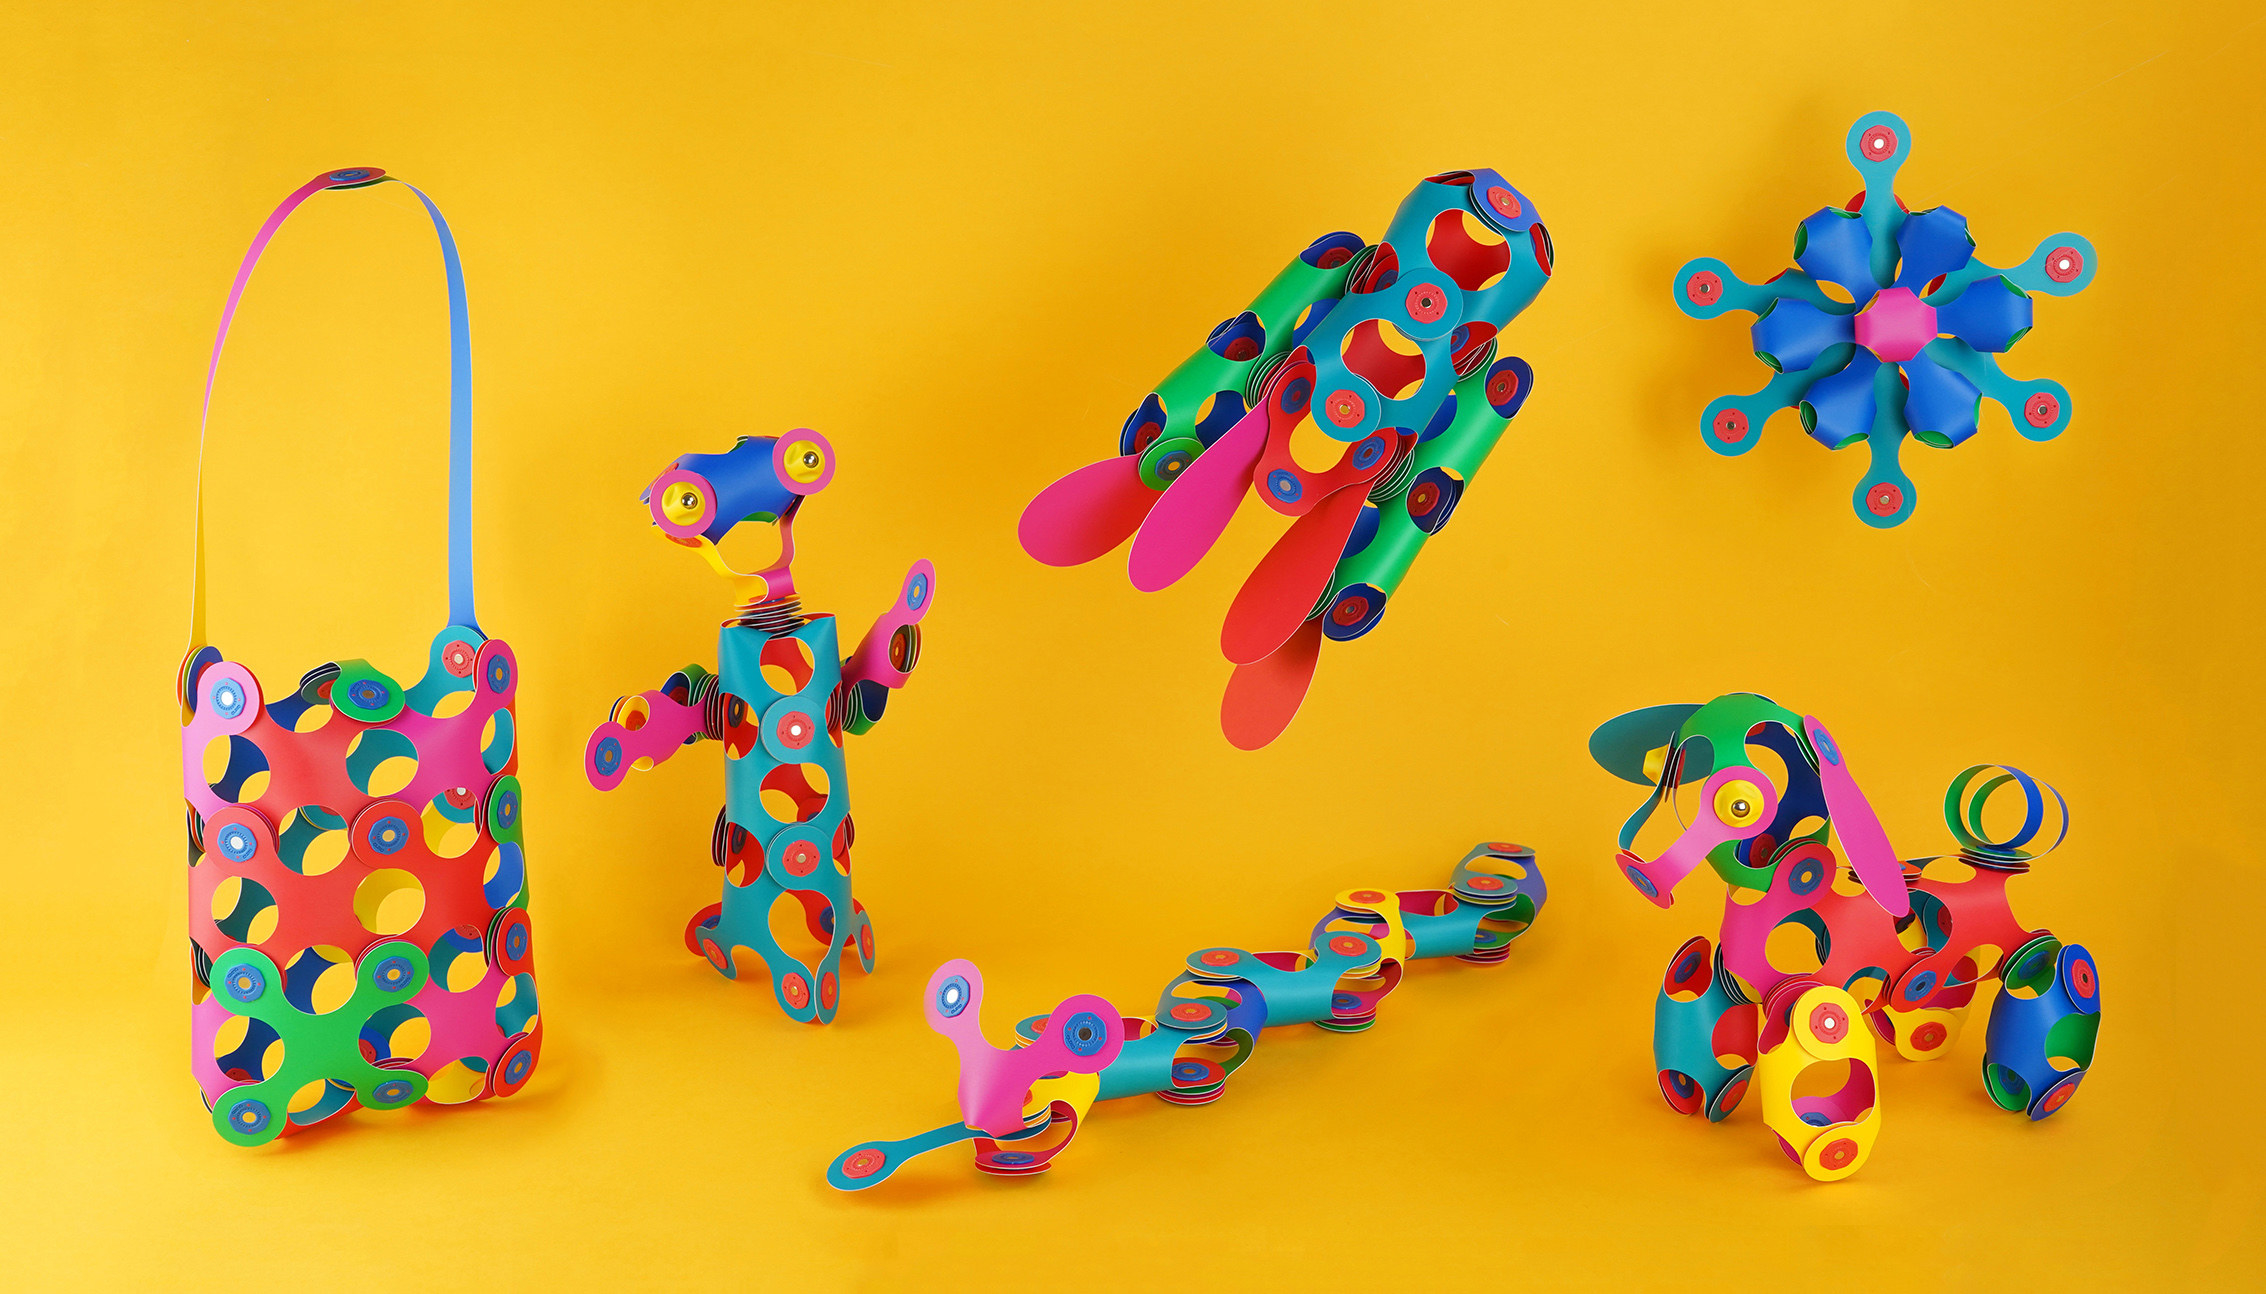 Clixo toys assembled into various shapes and animals